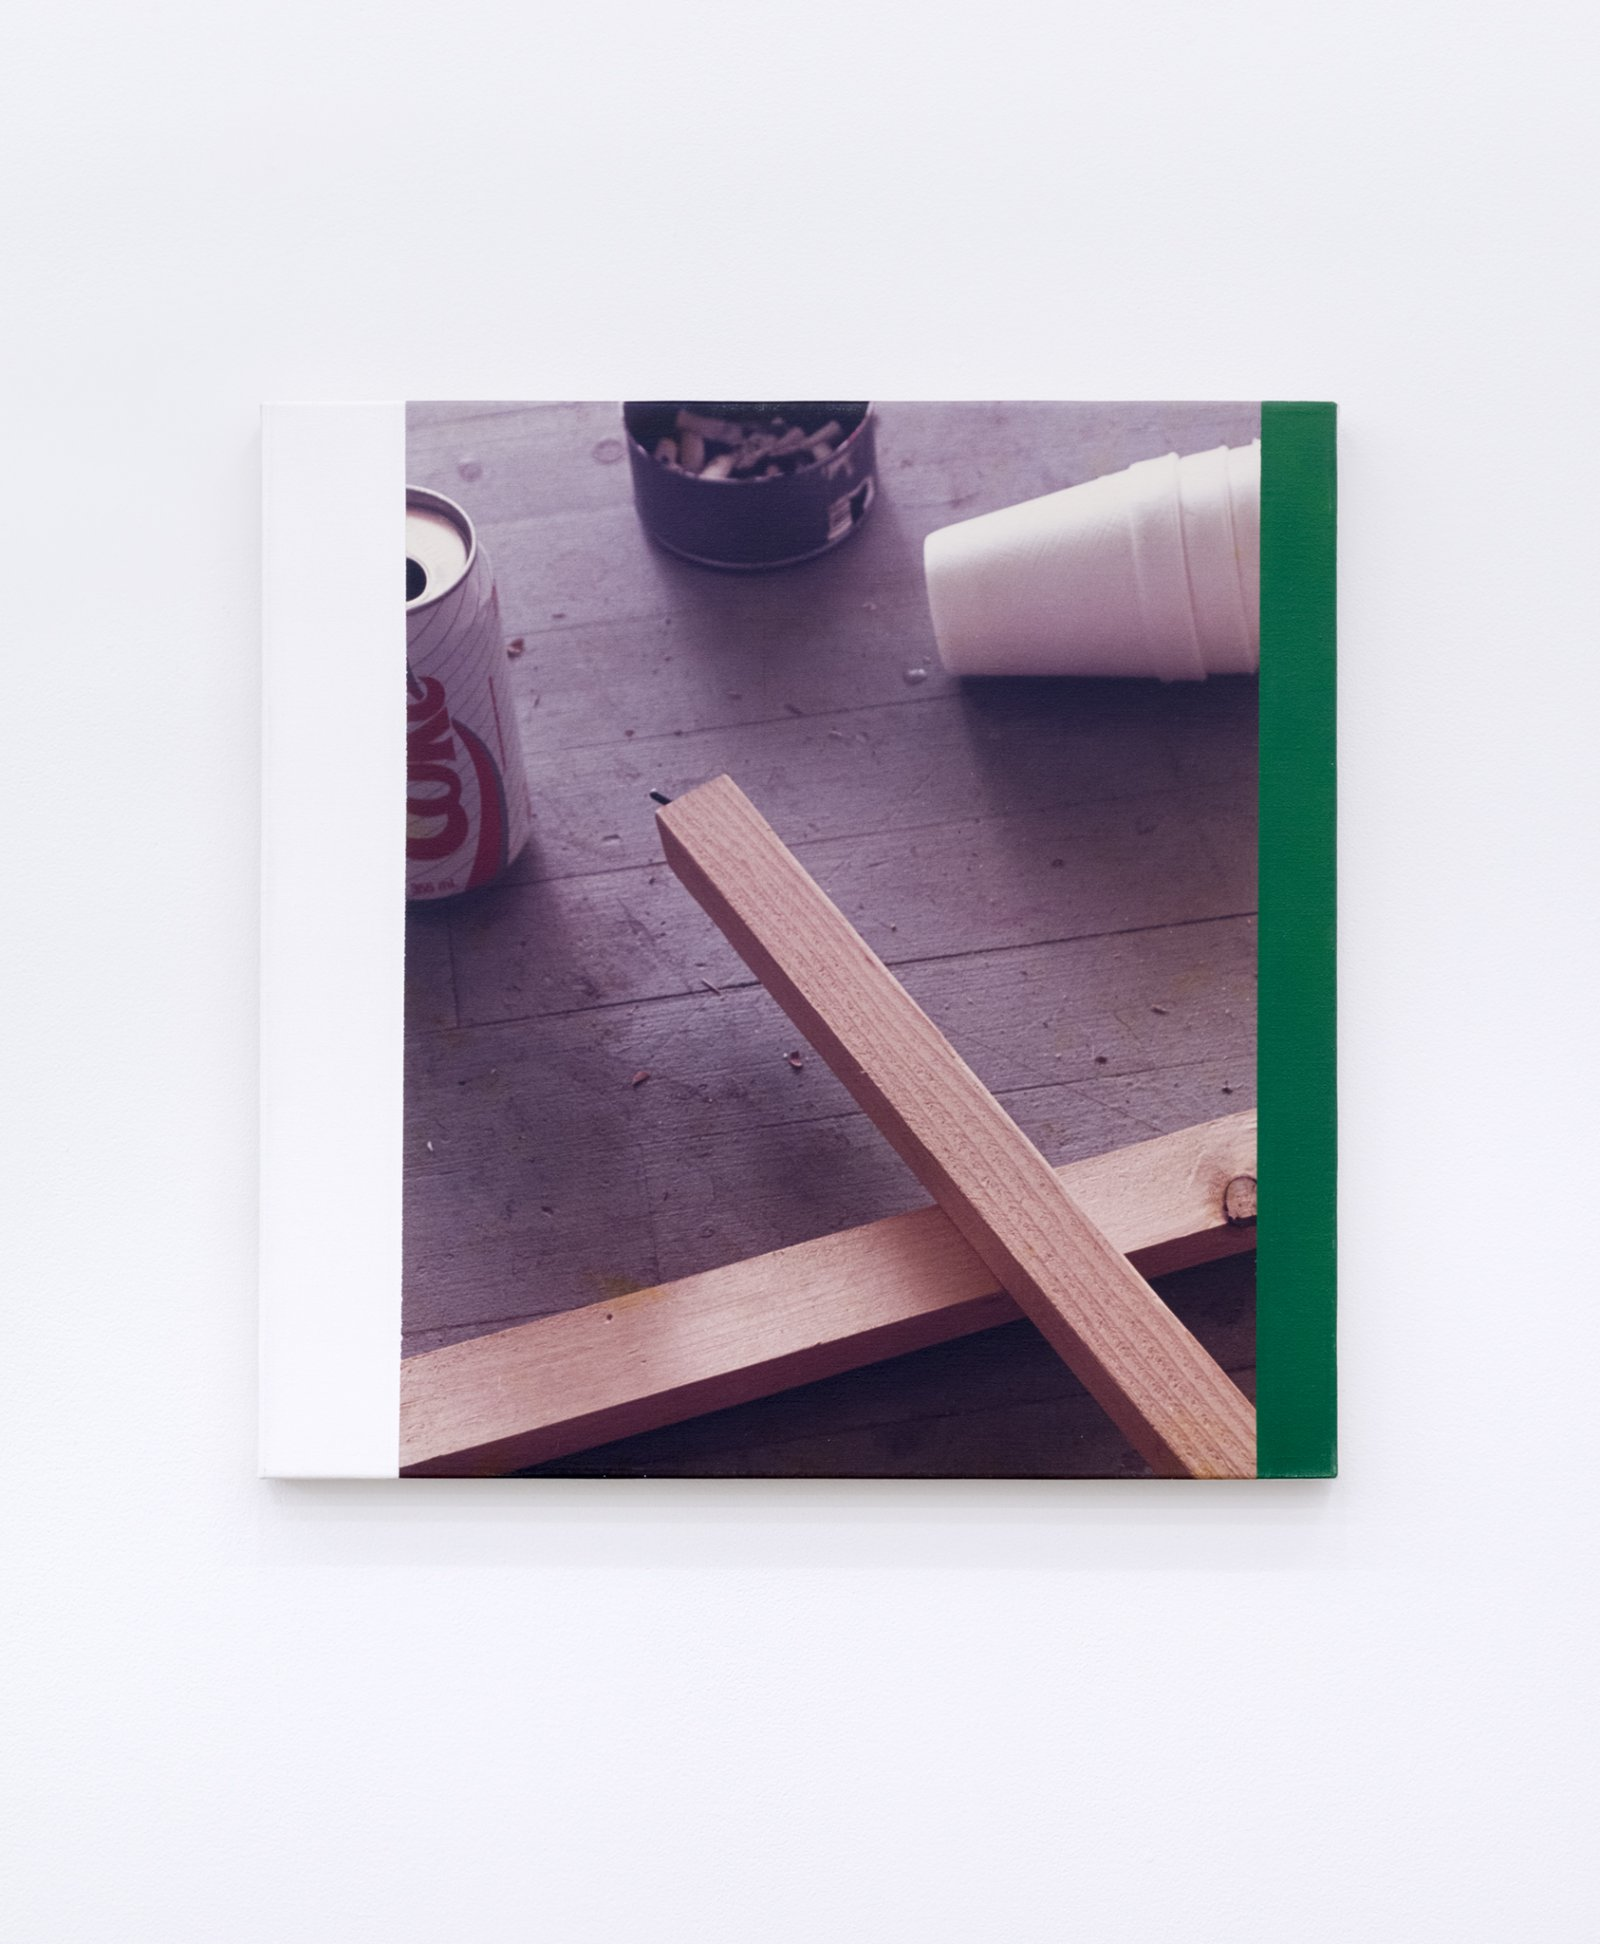 Ian Wallace, Messes from the floor of the studio of Elspeth Pratt, 1989, photolaminate and acrylic on canvas, 24 x 24 in. (61 x 61 cm) by Ian Wallace